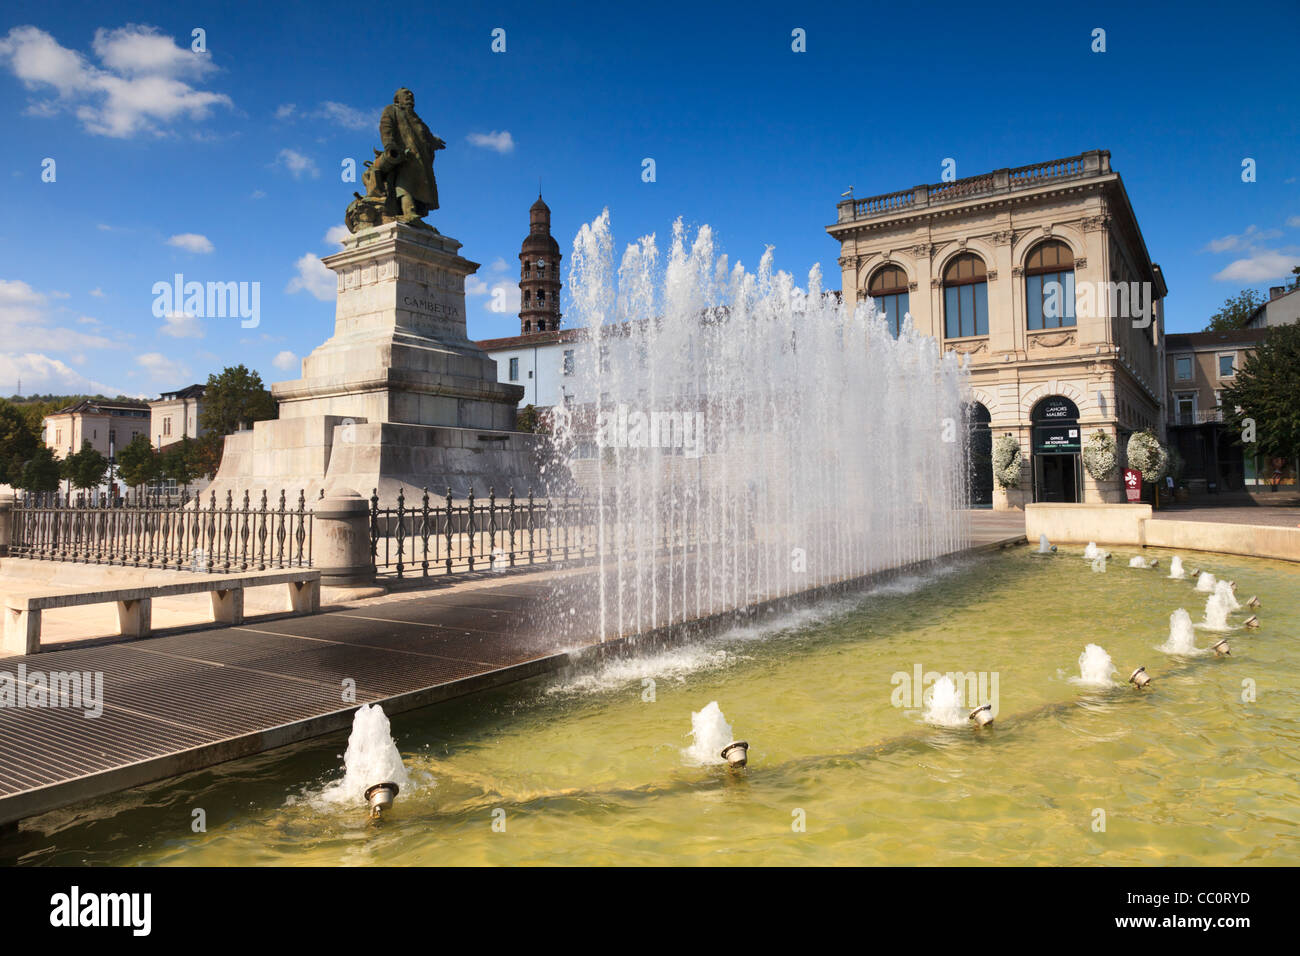 Fountain and statue of French statesman Leon Gambetta, who was born in Cahors. - Stock Image